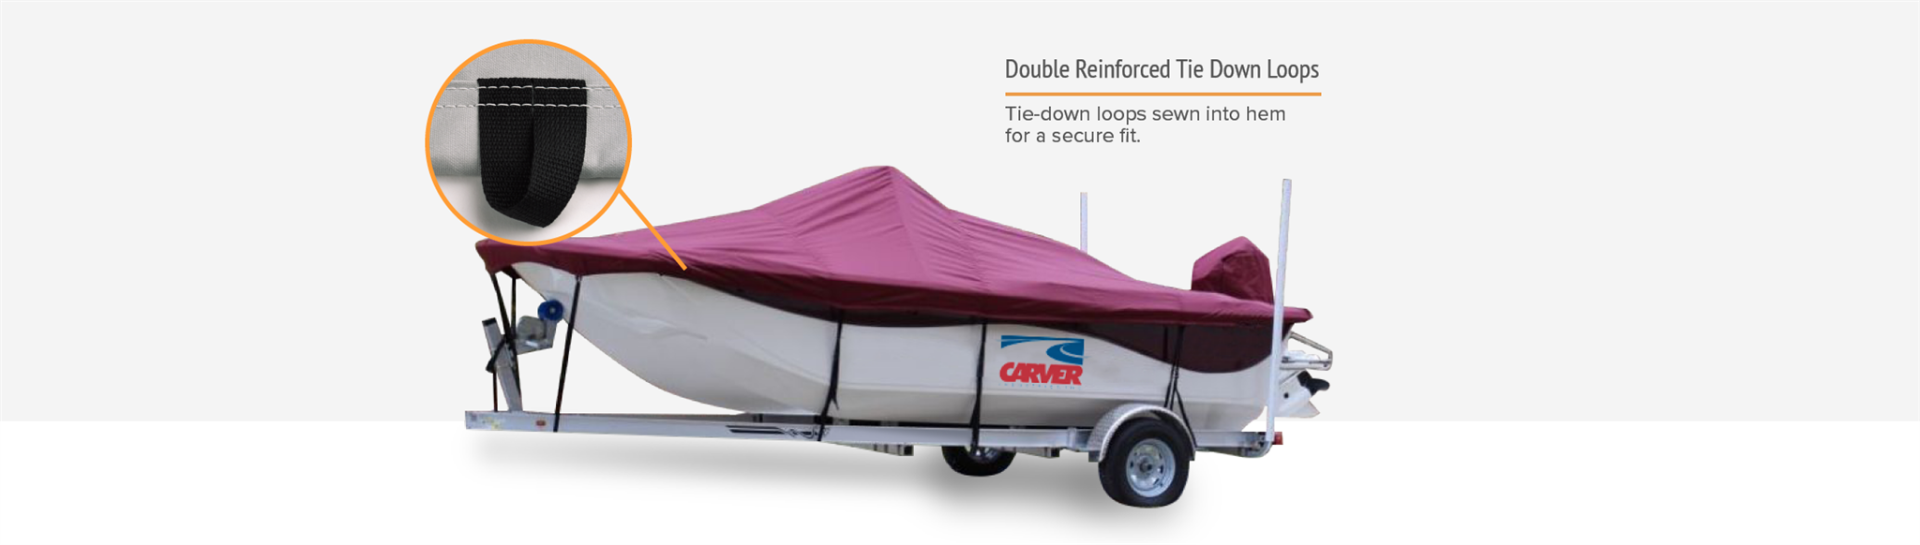 Carver boat cover tie downs